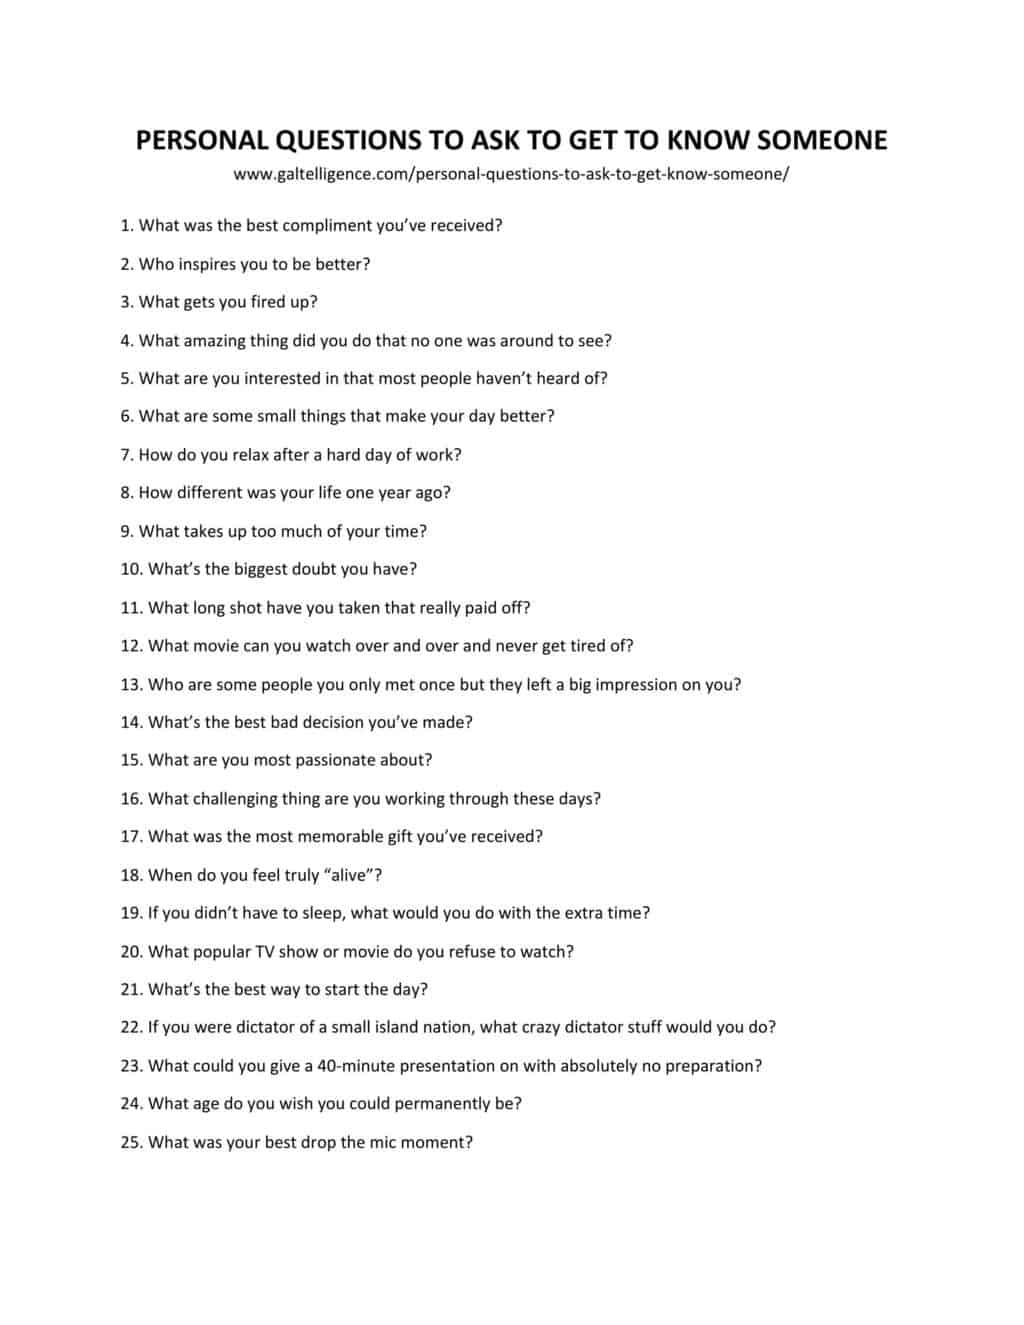 Downloadable and printable list of personal questions to ask to get to know someone